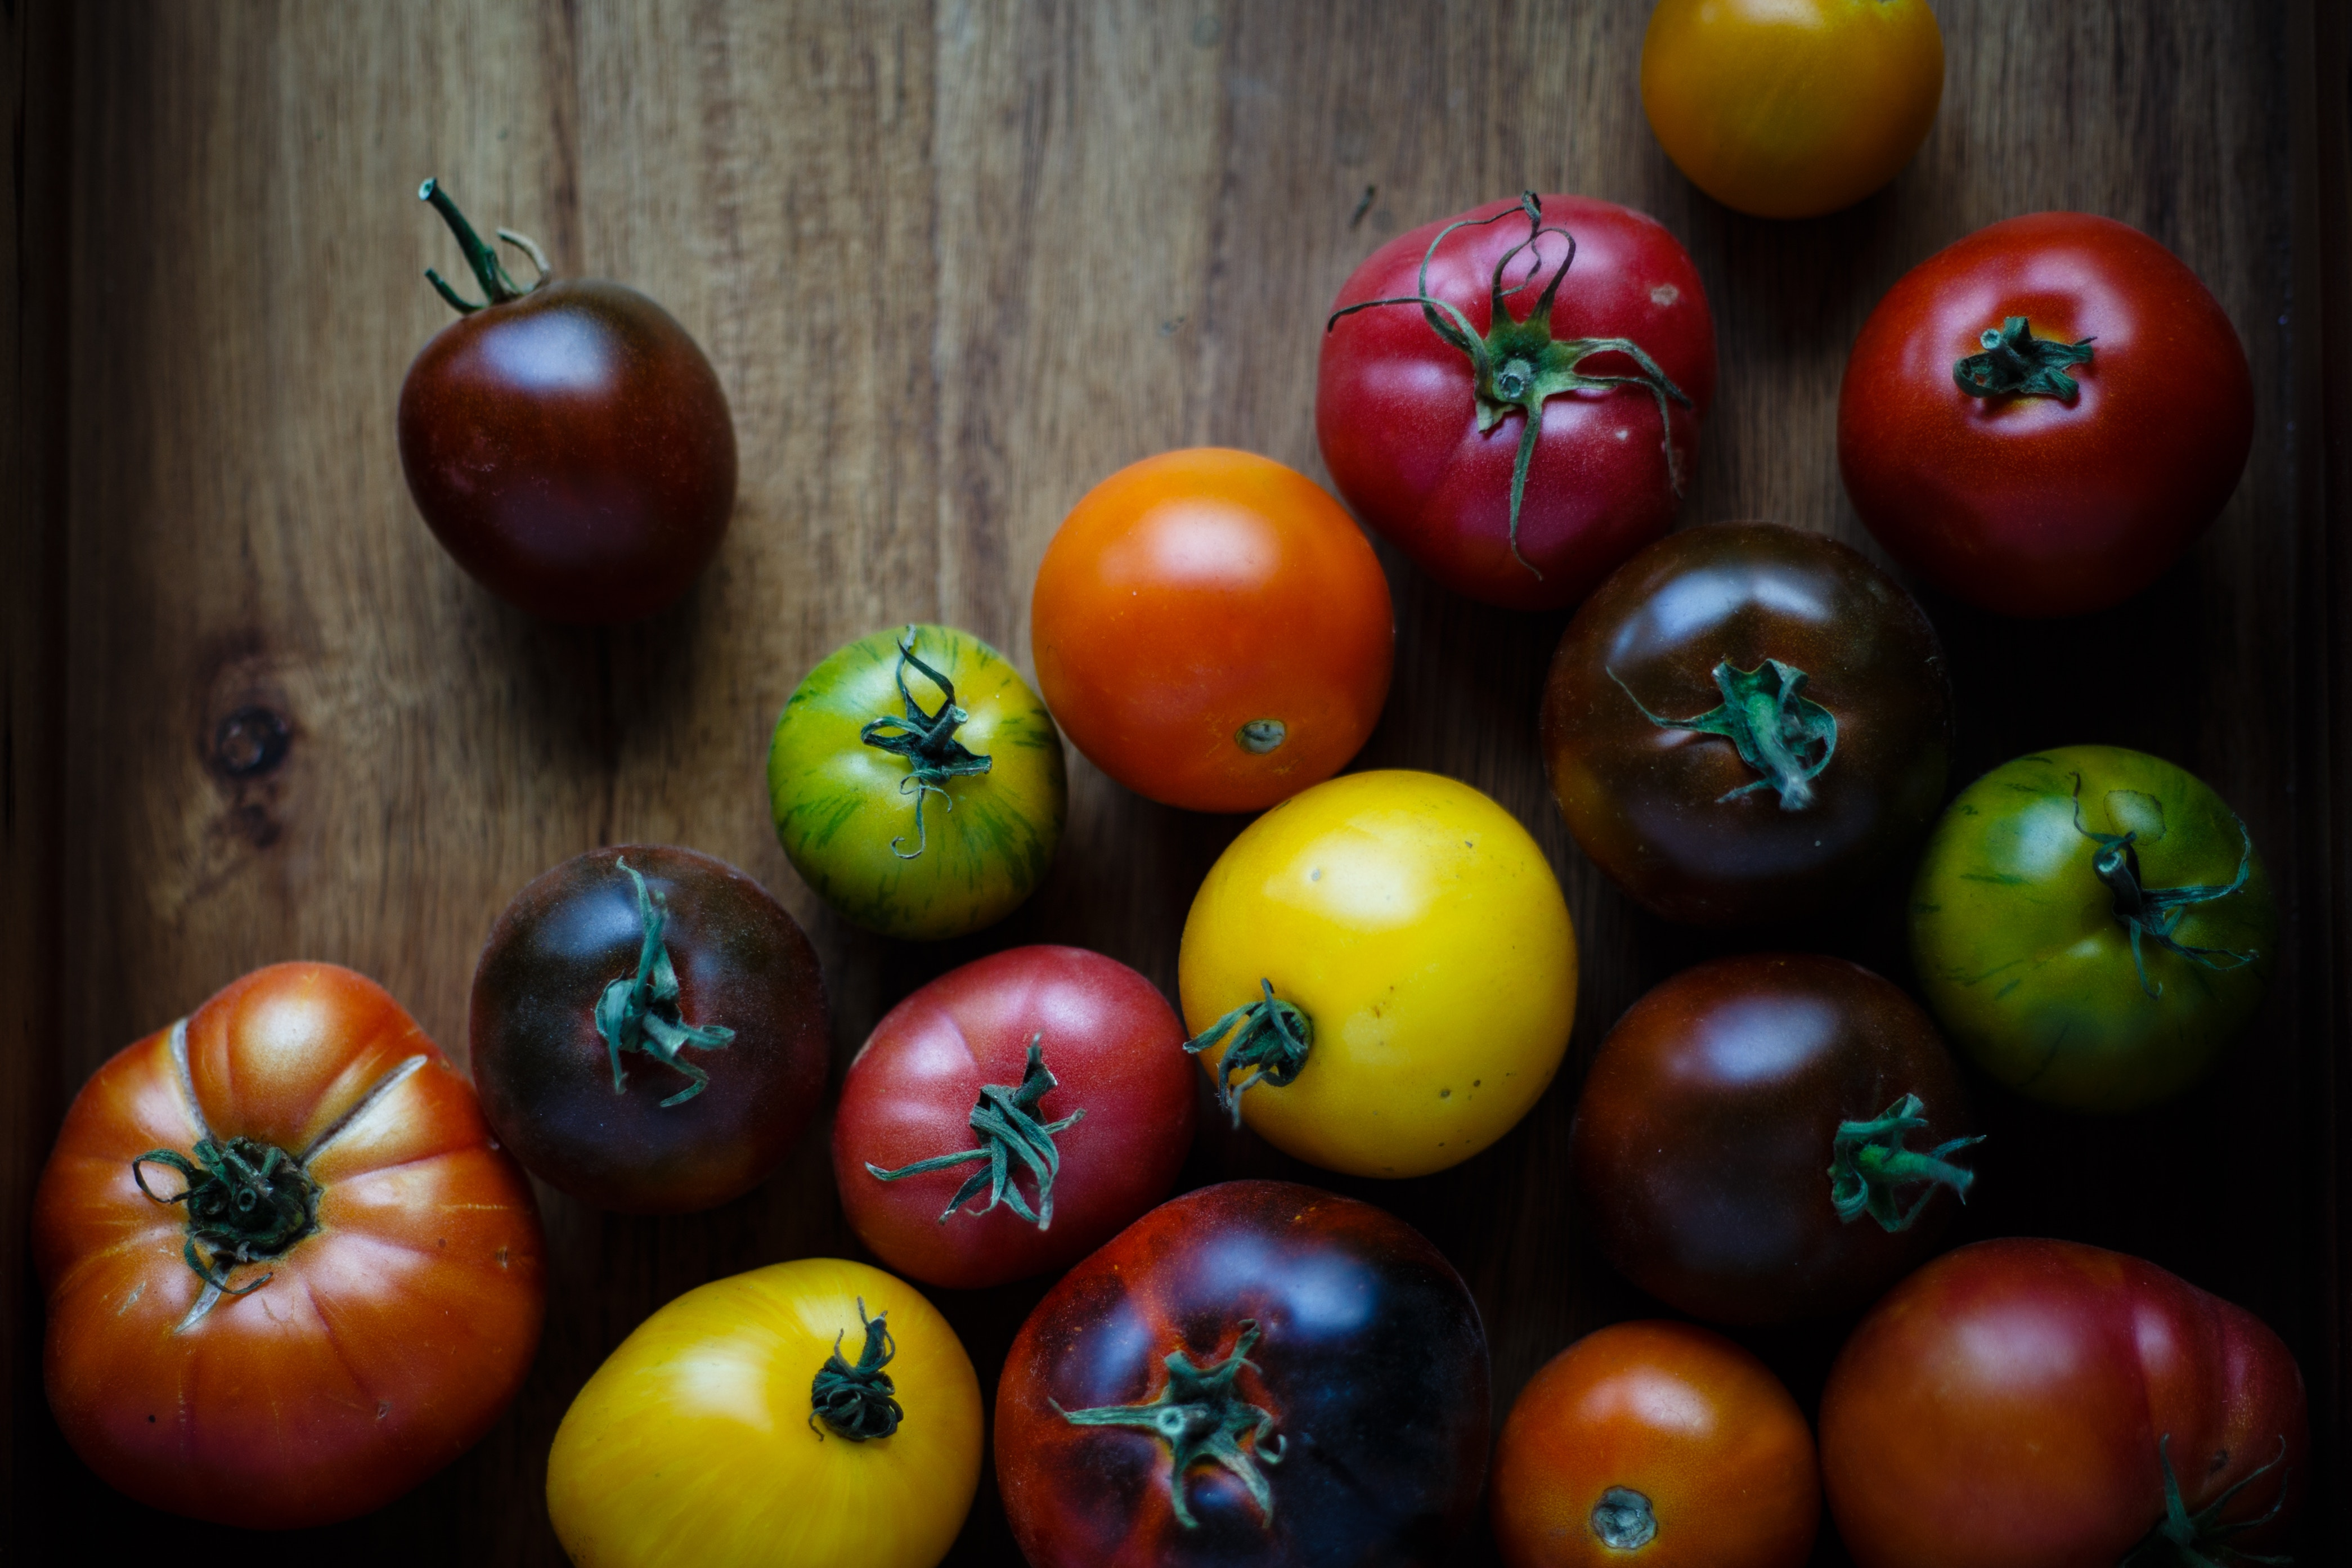 colored tomatoes, tomato nutrition